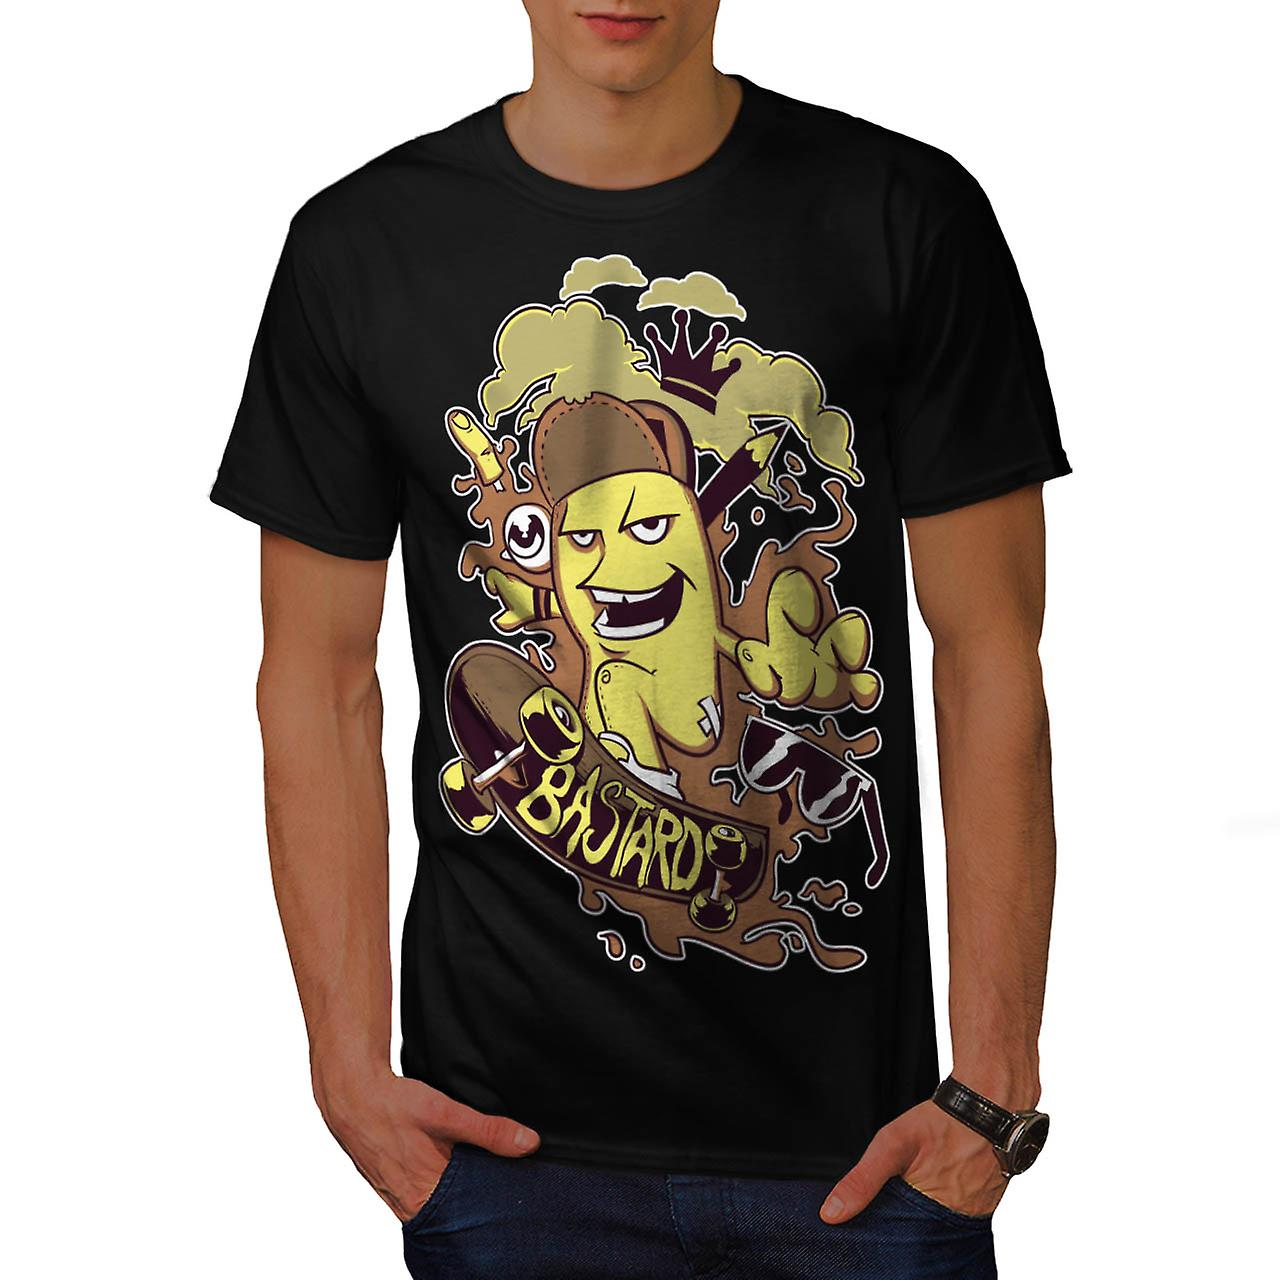 Crown bastardo pattini Skateboard uomo t-shirt nera | Wellcoda